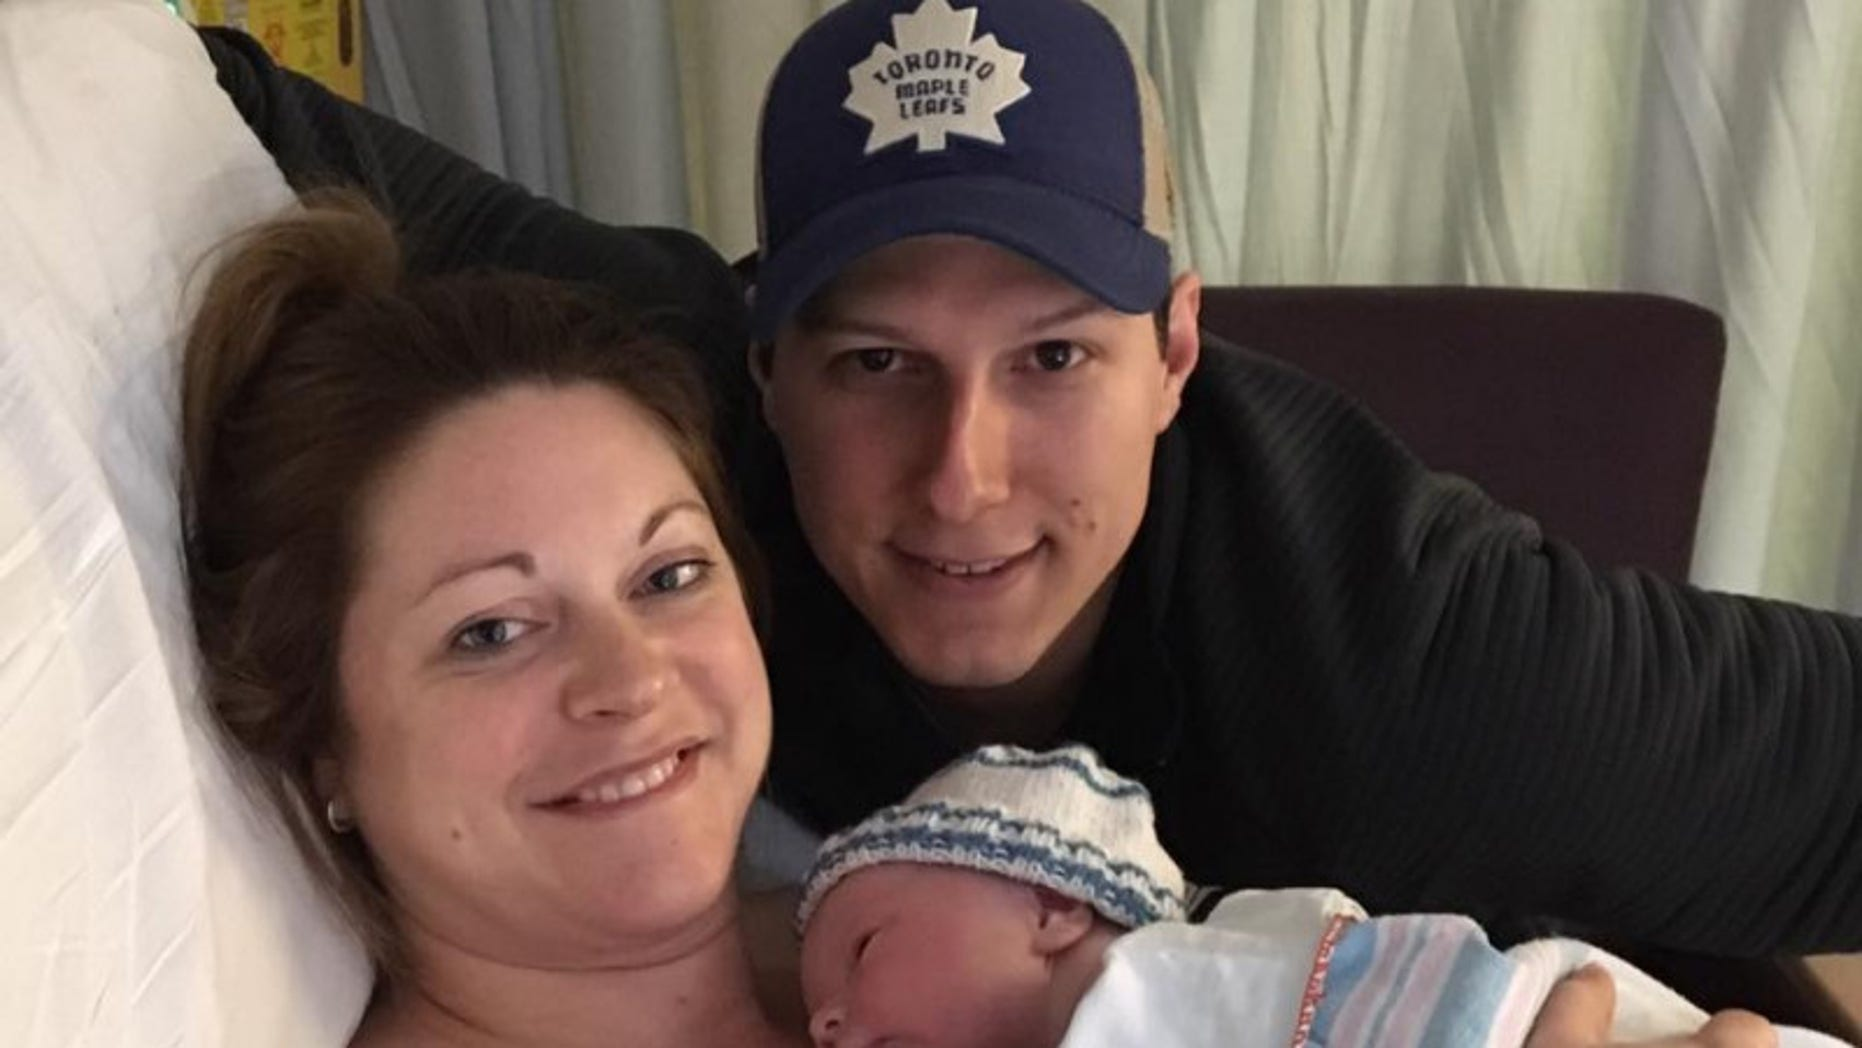 Lindsey Hubley is pictured with her newborn son and fiance. Days after this photo she was diagnosed with a flesh-eating bacteria infection.